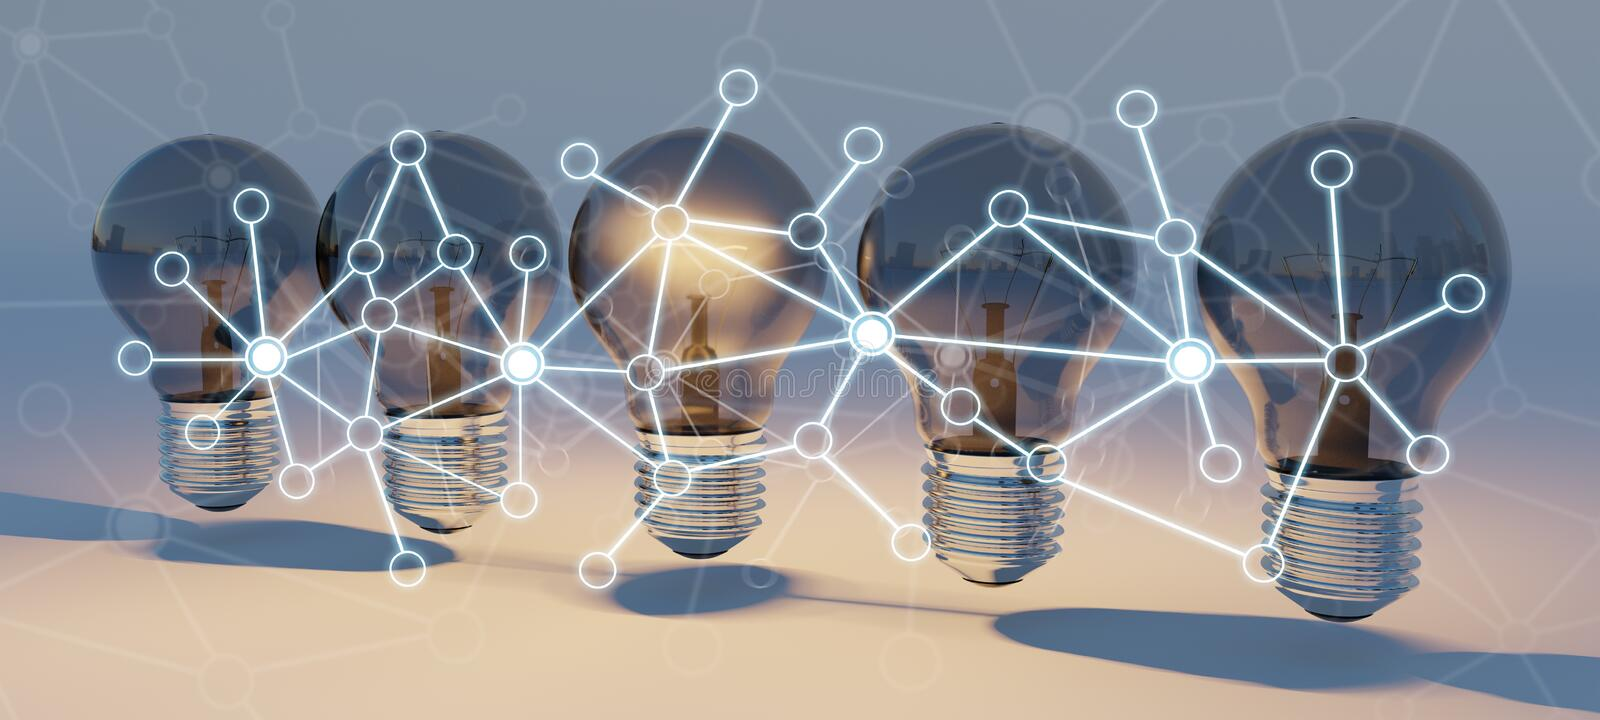 Bright lightbulbs and connections lined up 3D rendering vector illustration